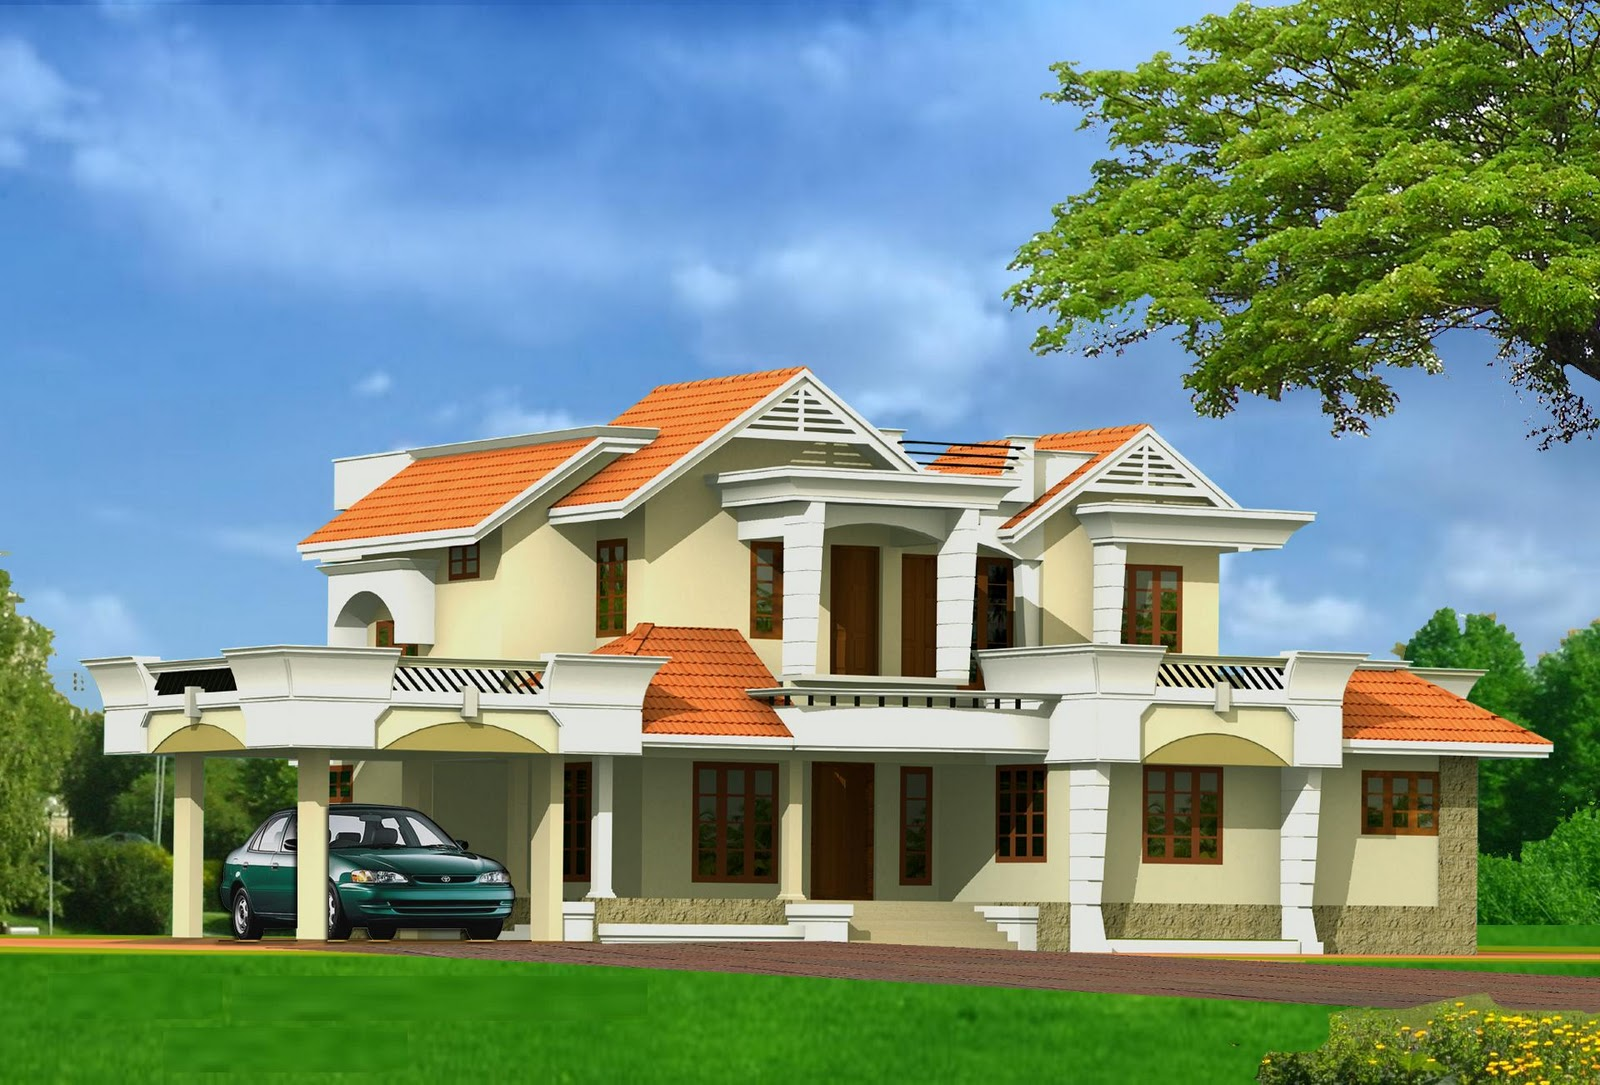 House plans and design architectural designs of for Construction house plans